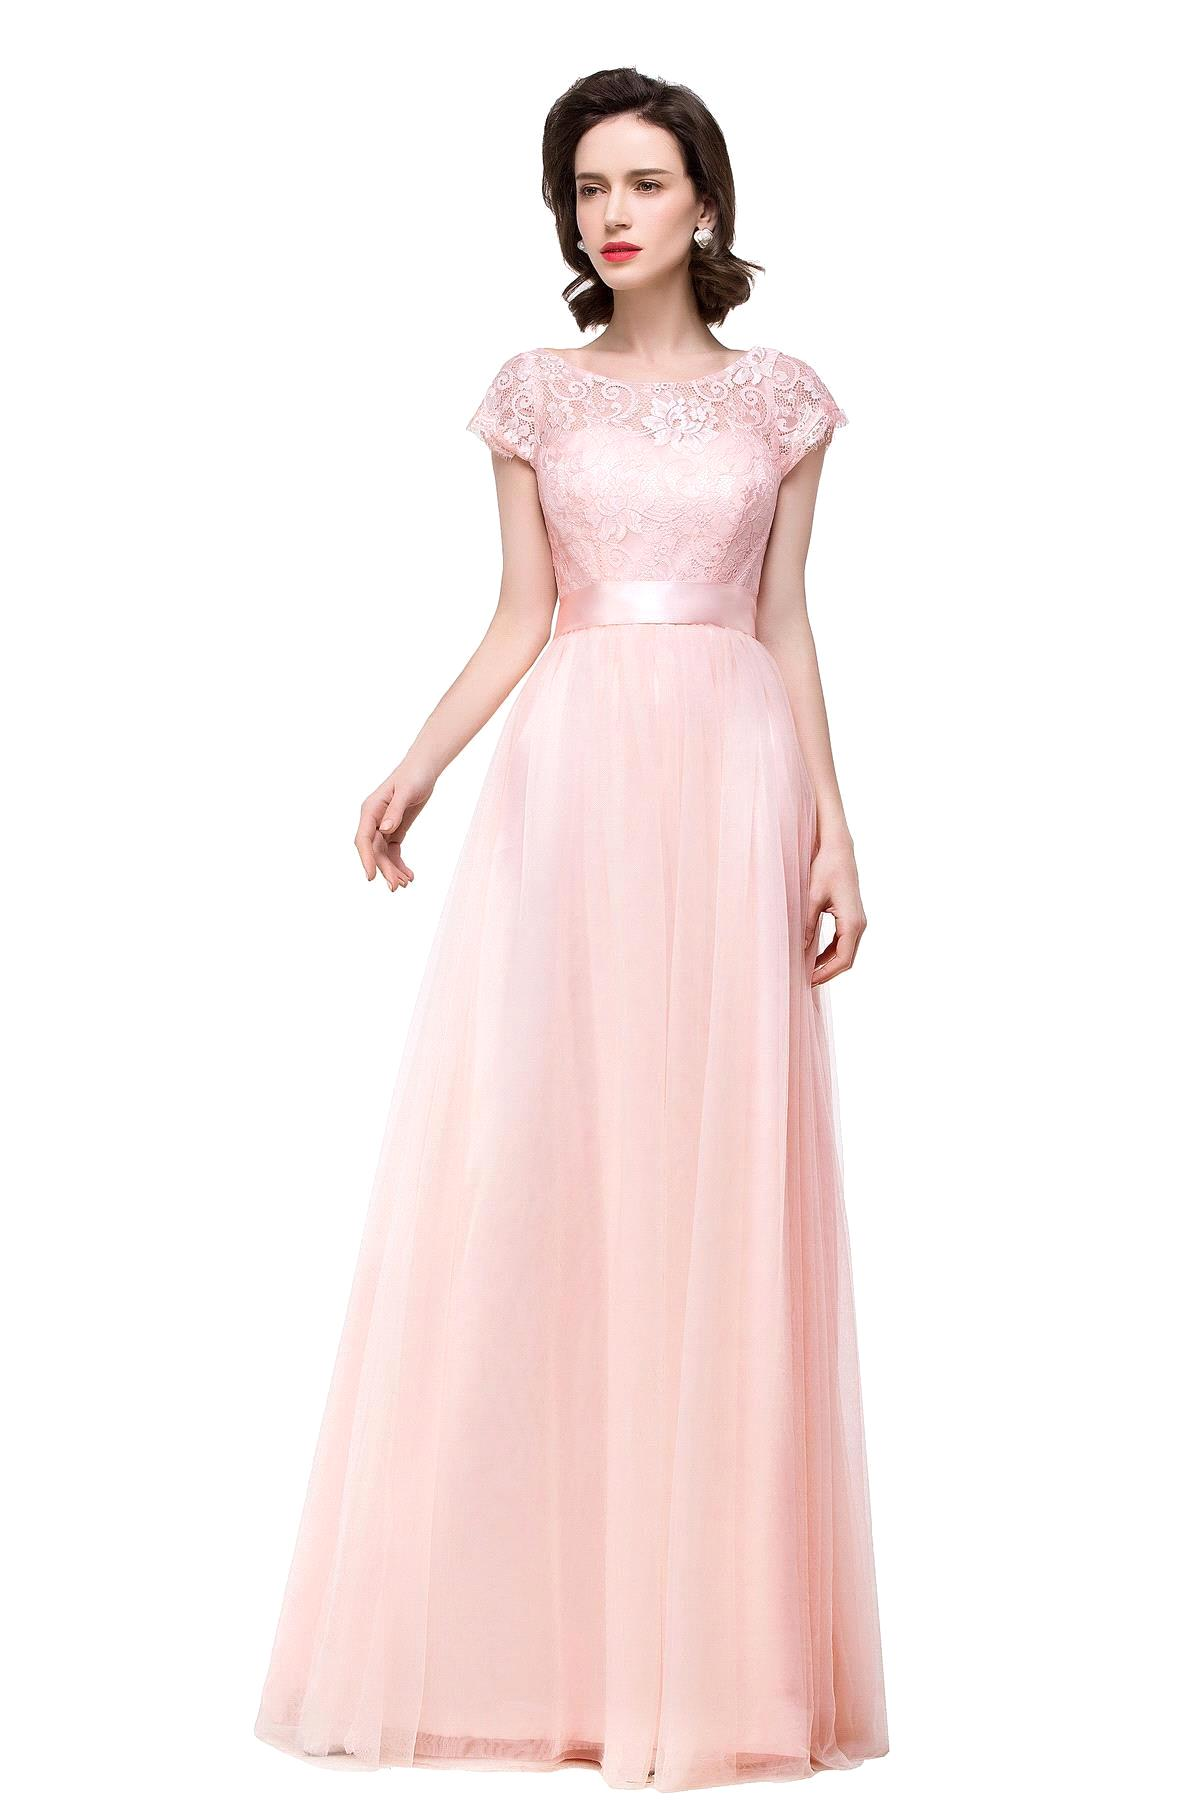 robe demoiselle d 39 honneur custom make blush pink lace bridesmaid dresses 2017 a line short. Black Bedroom Furniture Sets. Home Design Ideas